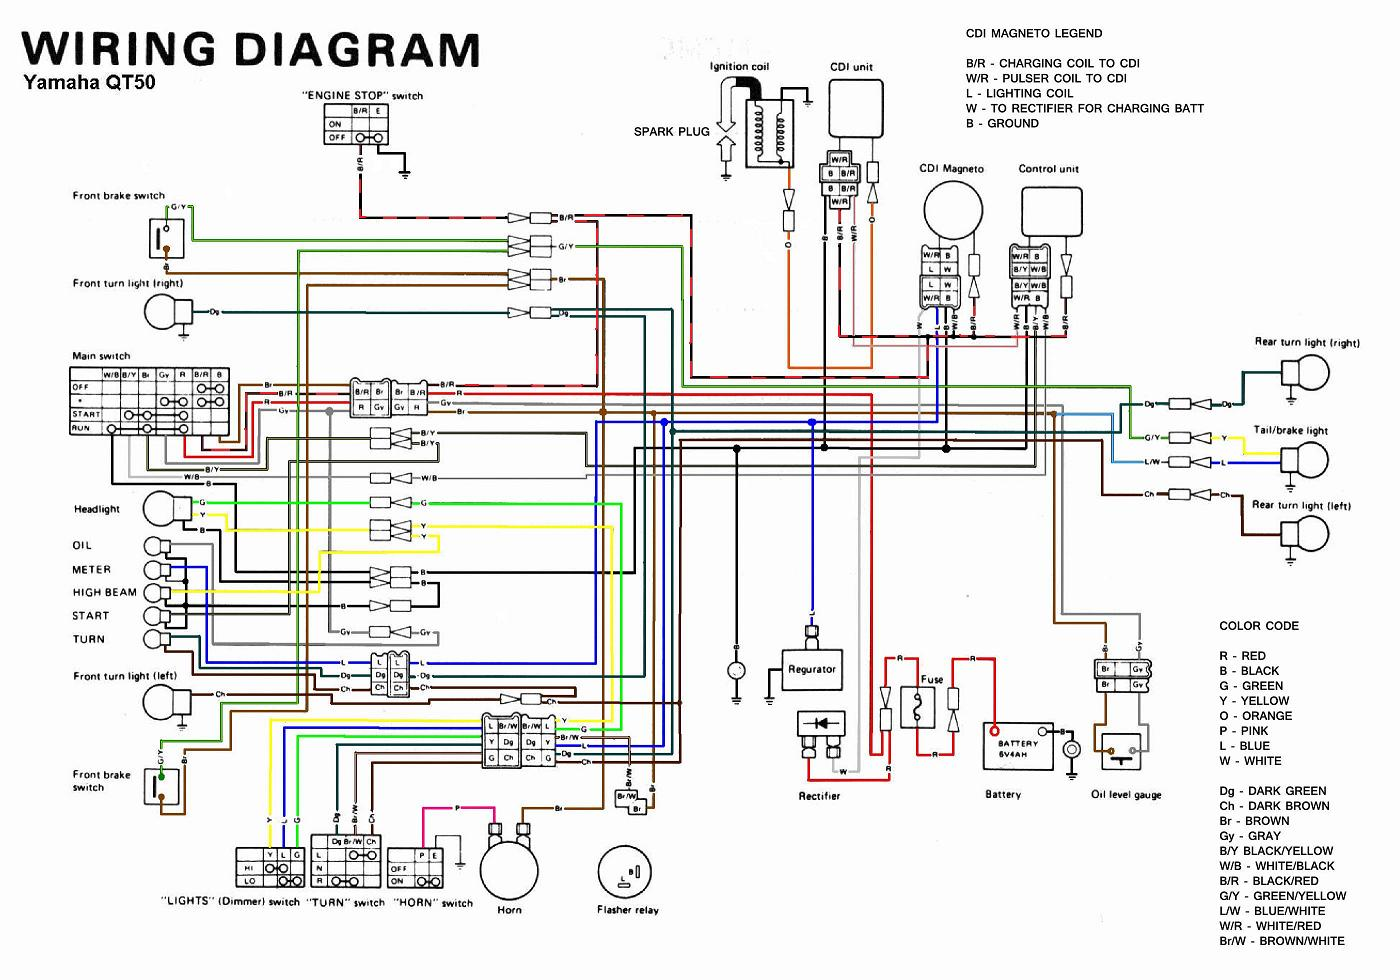 Yamaha Qt50 Wiring Diagram Luvin And Other Nopeds Logo